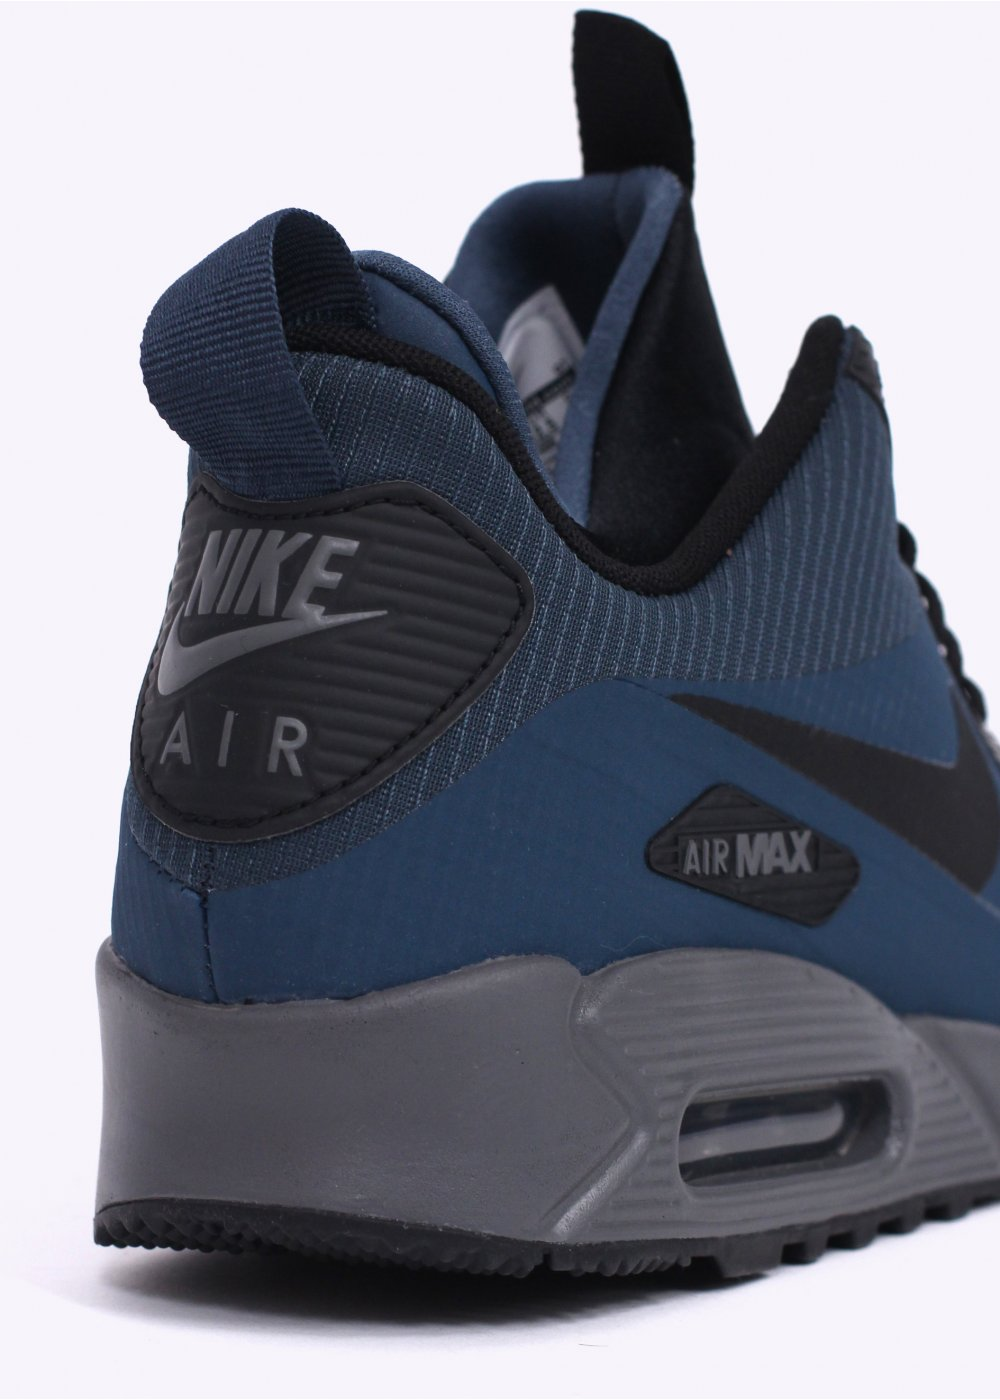 promo code 871d3 7b4d8 Nike Footwear Air Max 90 Mid Winter Sneakerboots - Squadron Blue / Black